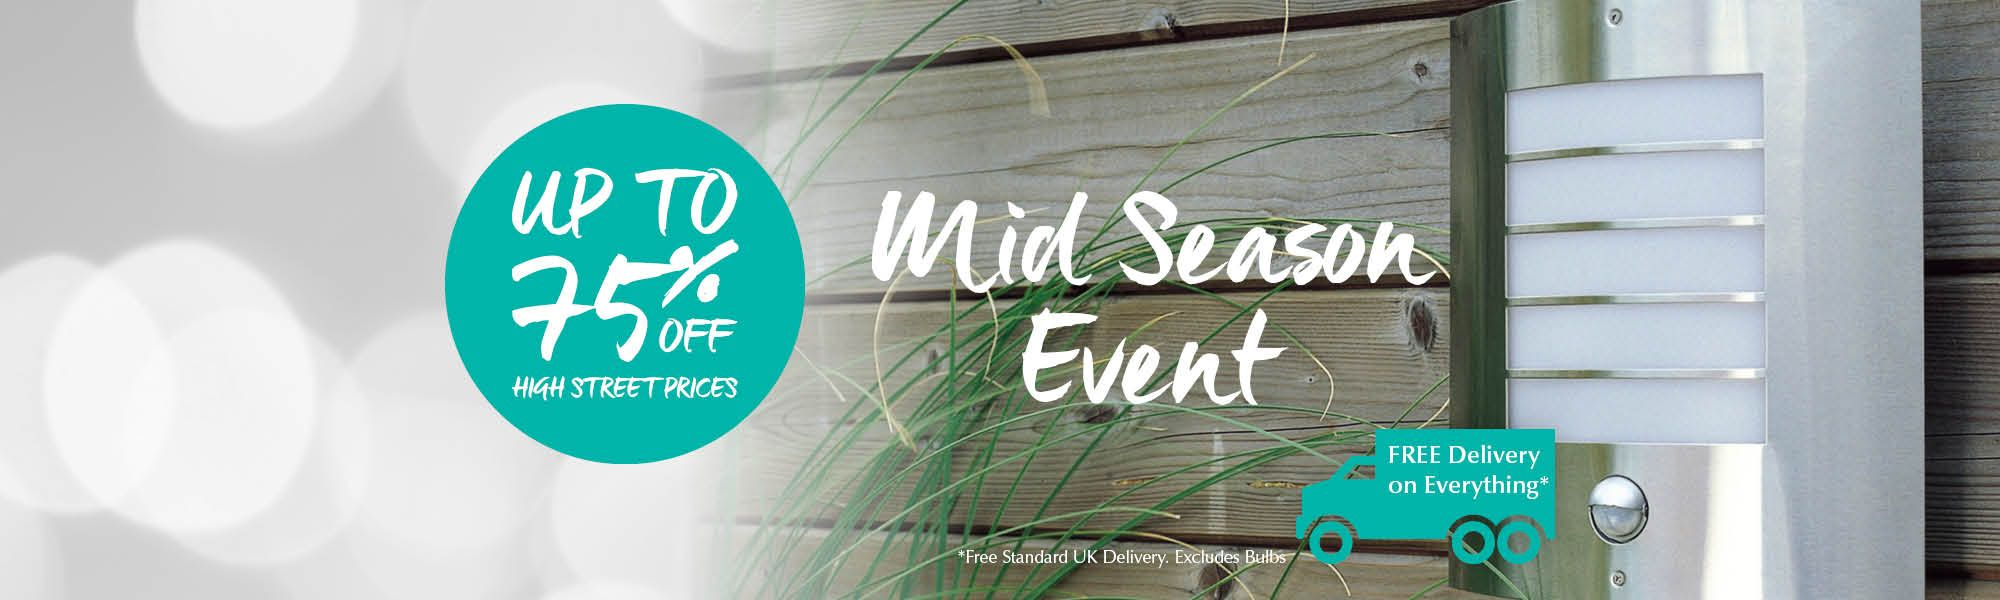 Mid Season Event at Litecraft - Save up to 75% off High Street Prices